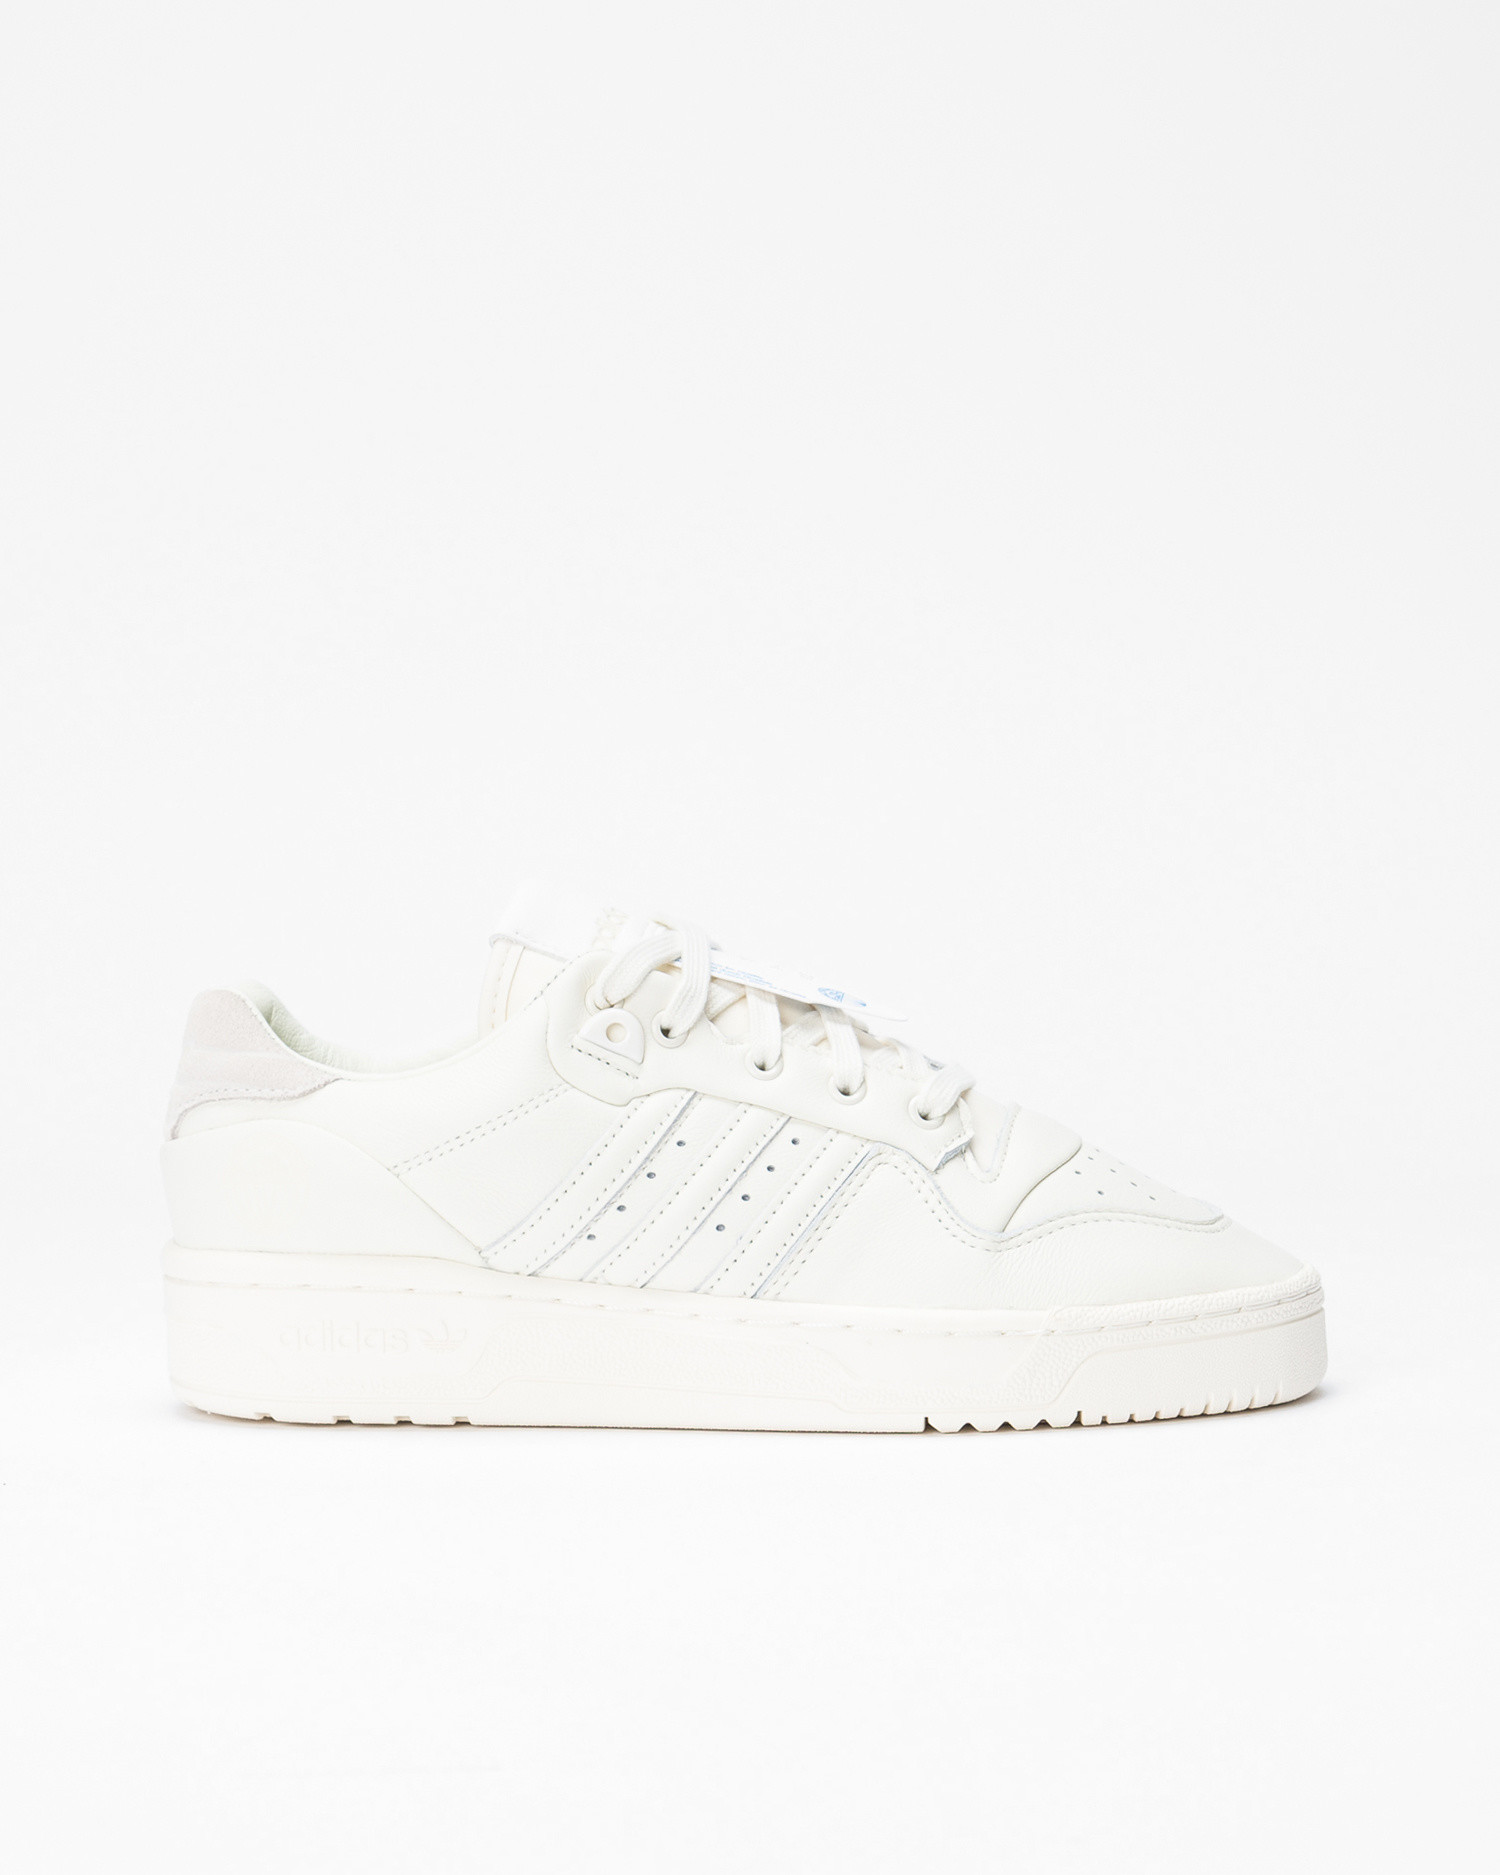 Adidas Rivalry Low off white/off white/cloud white